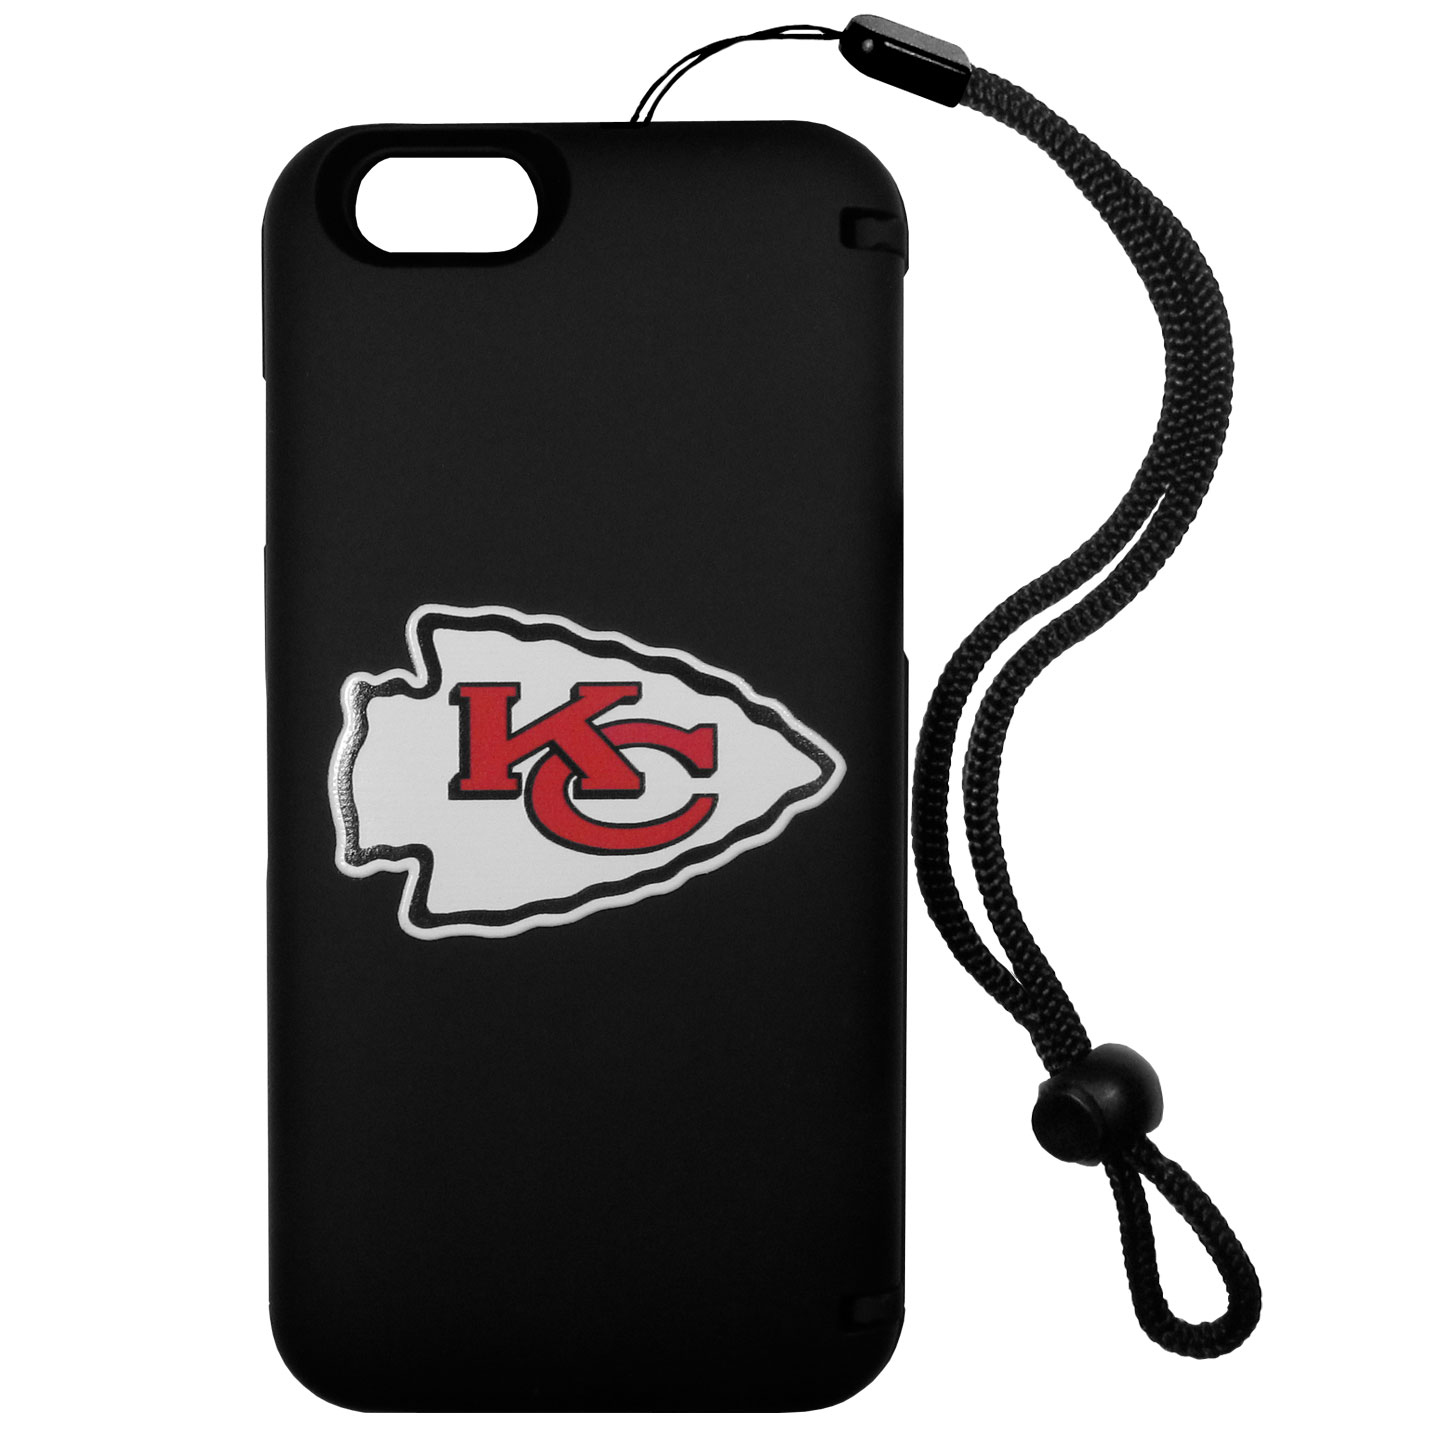 Kansas City Chiefs iPhone 6 Plus Everything Case - This case really does have everything but the kitchen sink! The hidden compartment lets you keep your cards, money and tickets to the big game safe and secure and has a compact mirror so you can make sure your game face is ready to go. It also comes with a kickstand to make chatting and watching videos a breeze. The wrist strap allows you to travel with ease with your everything case. If that's not enough, it also comes with the Kansas City Chiefs logo printed in expert detail on the front.